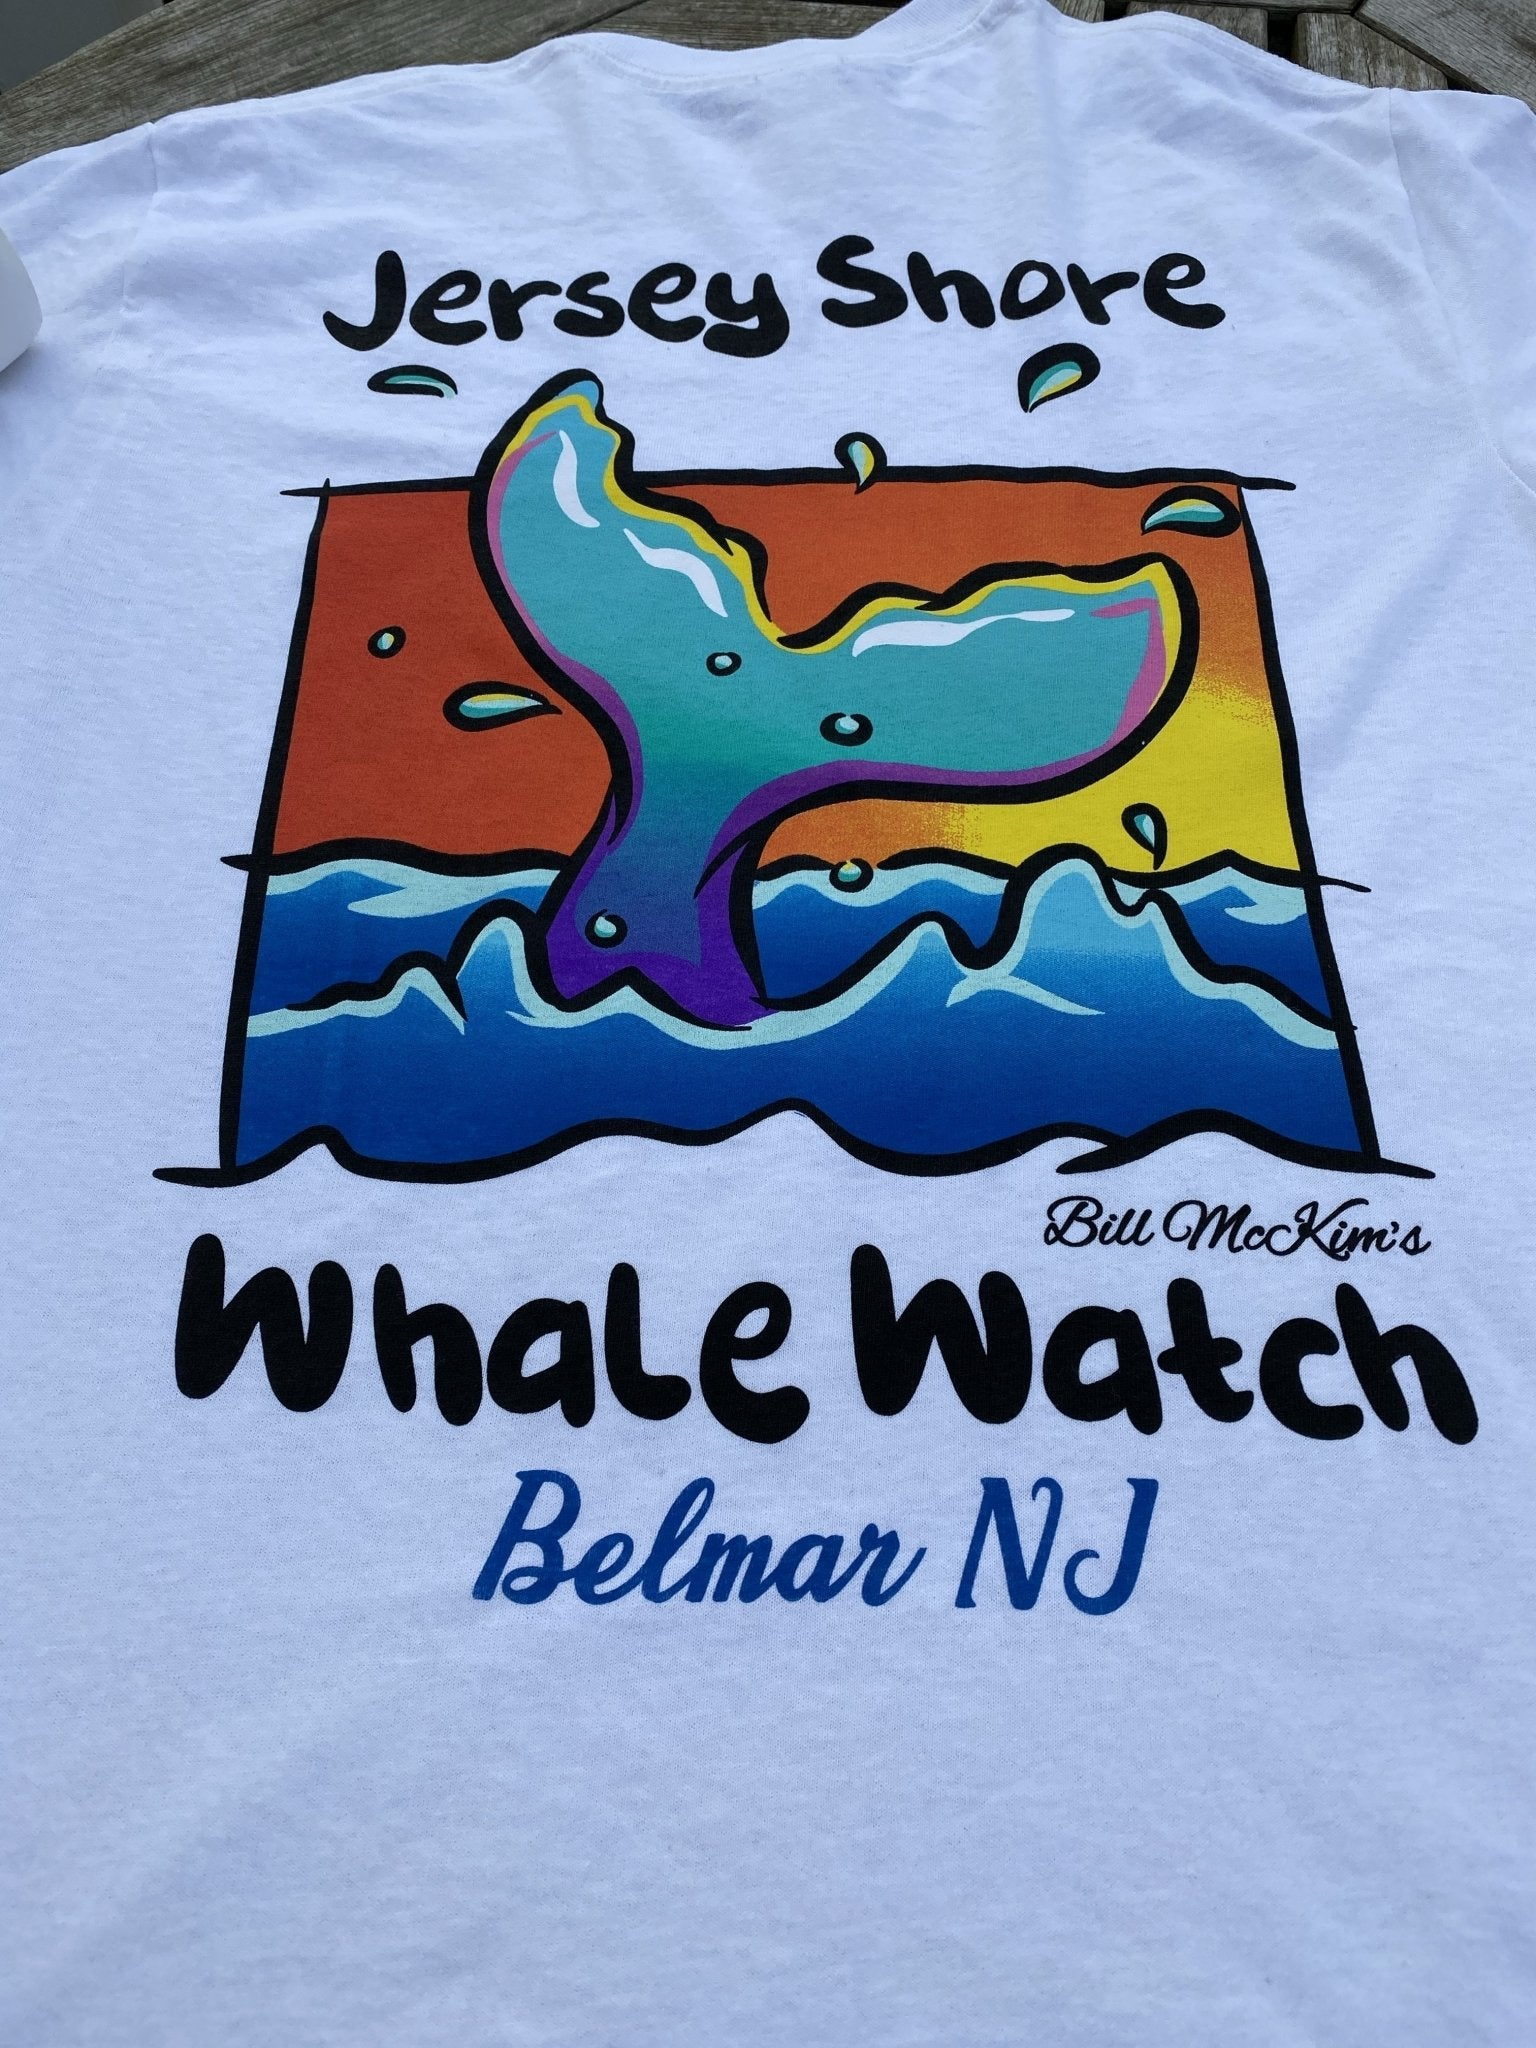 Jersey Shore Whale Watch T-shirt 2020 - Bill McKim Photography -Jersey Shore whale watch tours